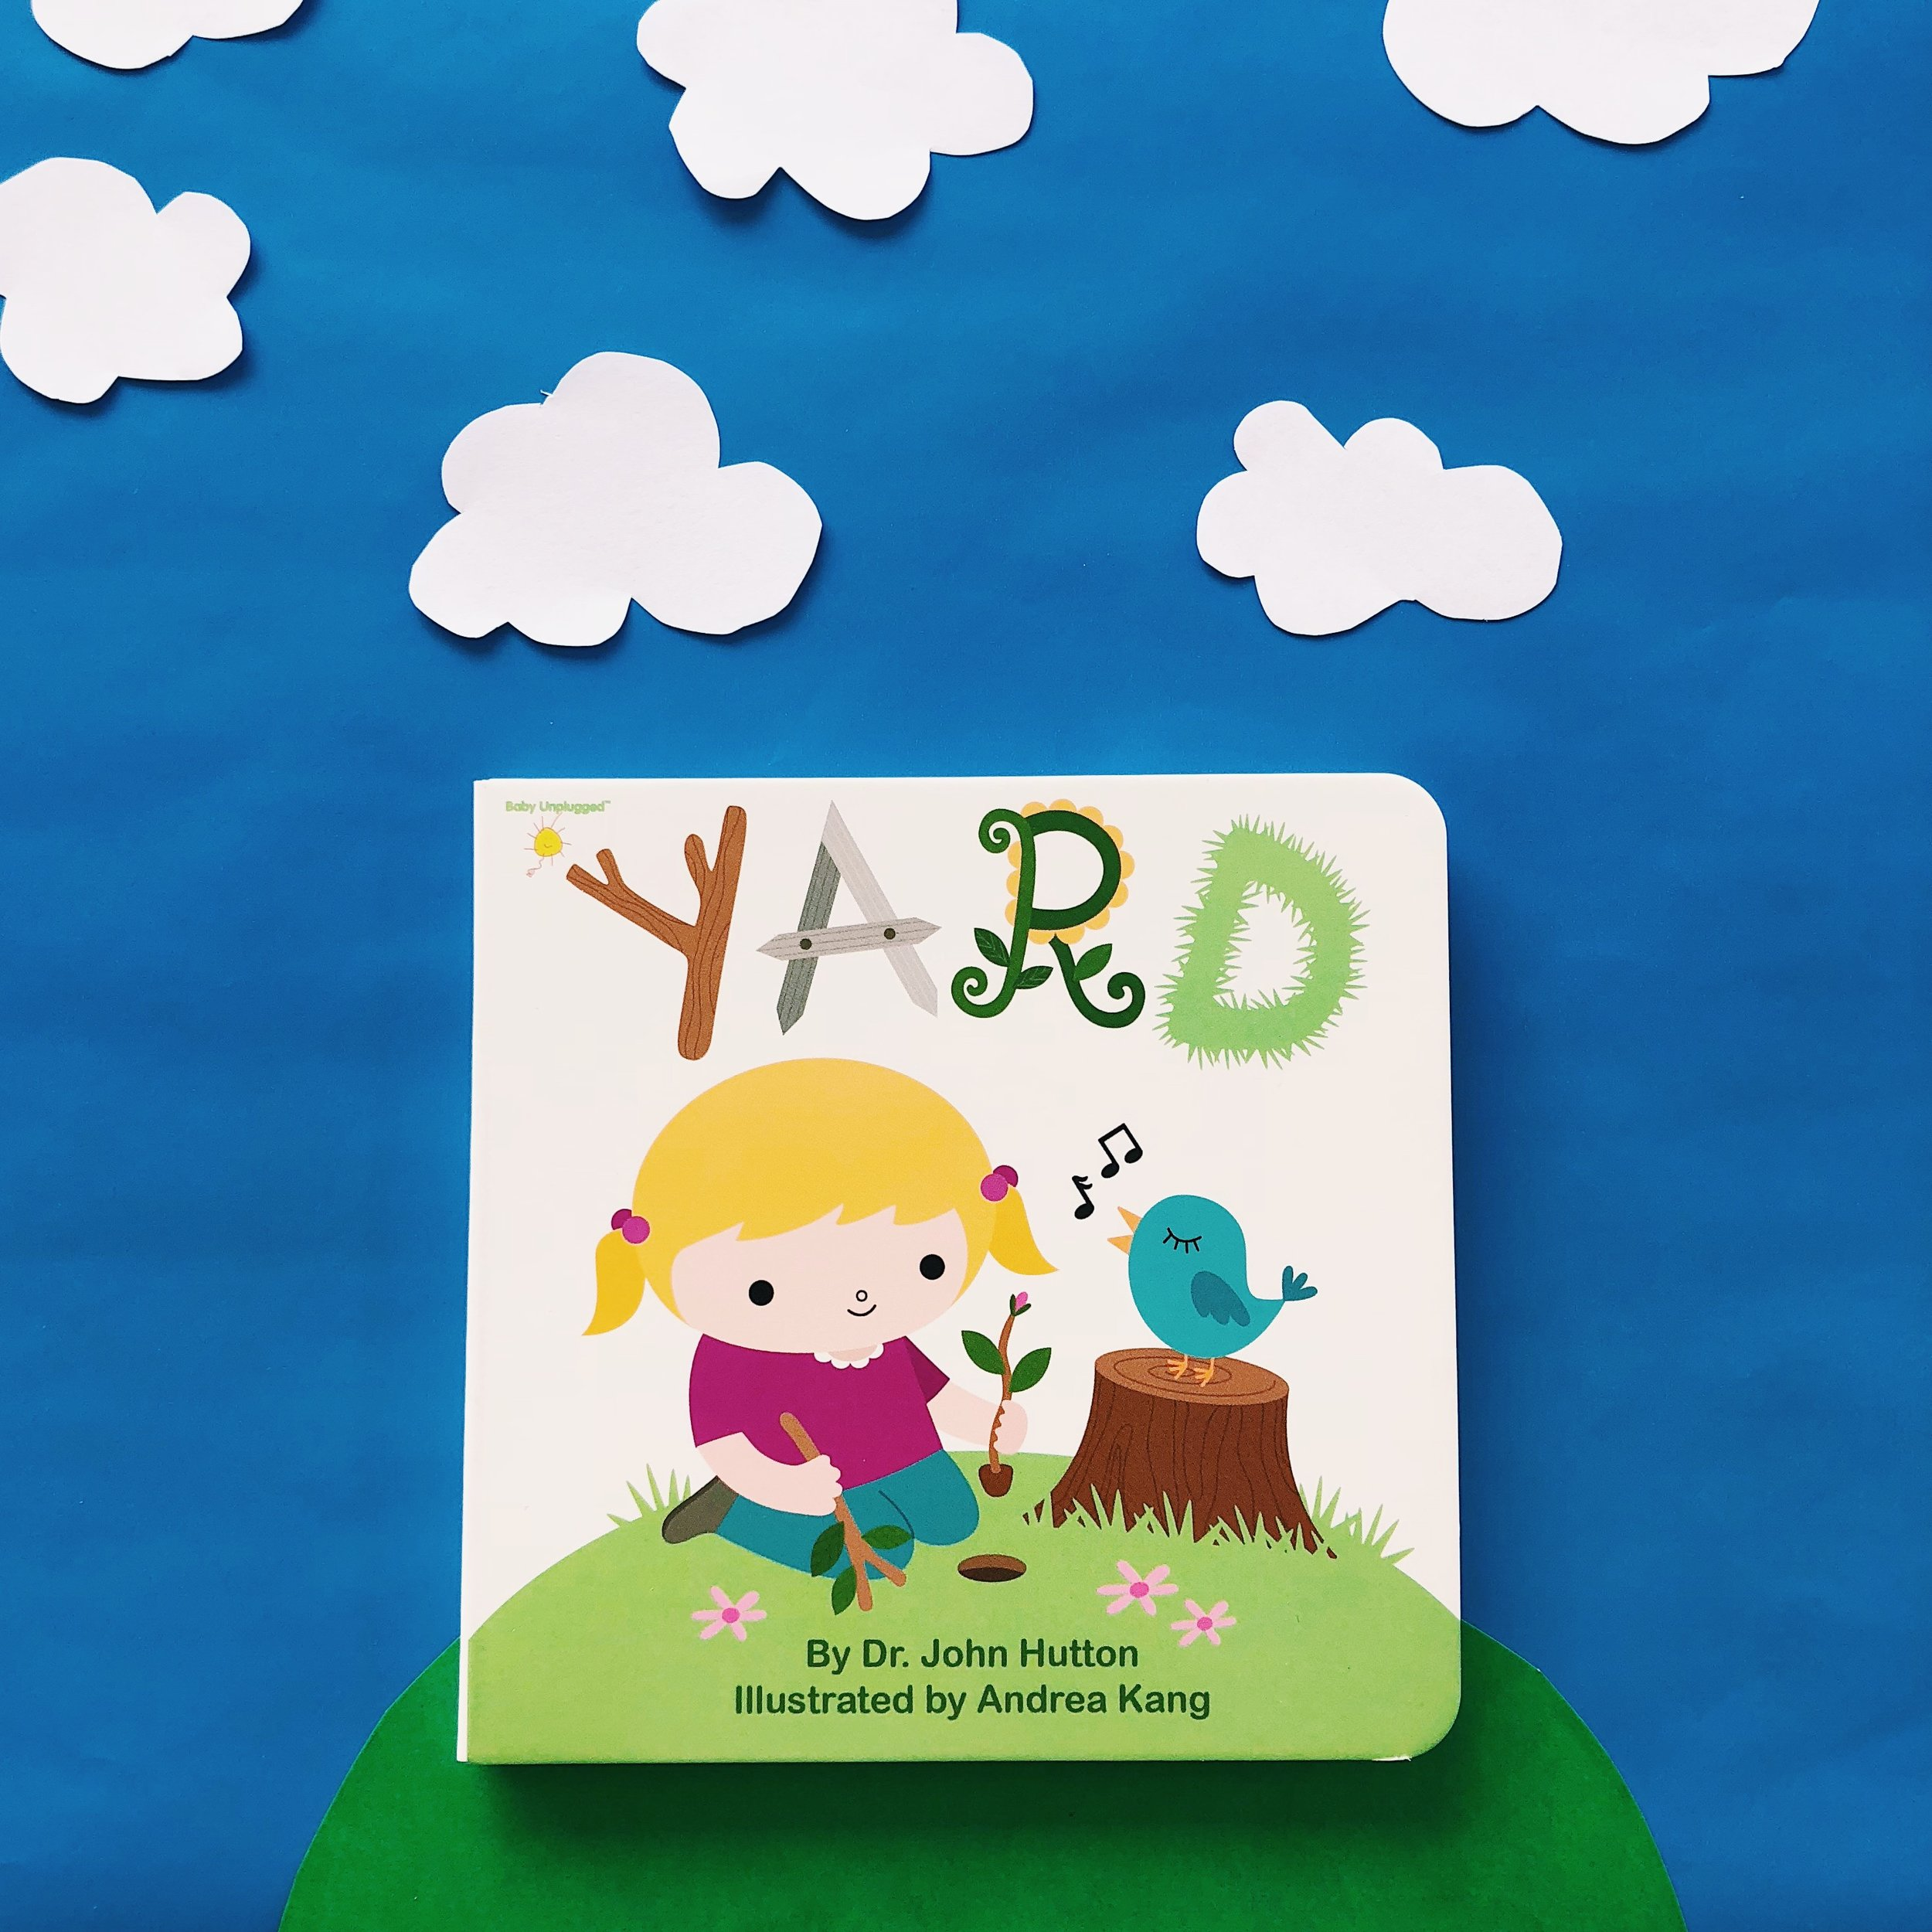 Yard   written by Dr. John Hutton and illustrated by Andrea Kang